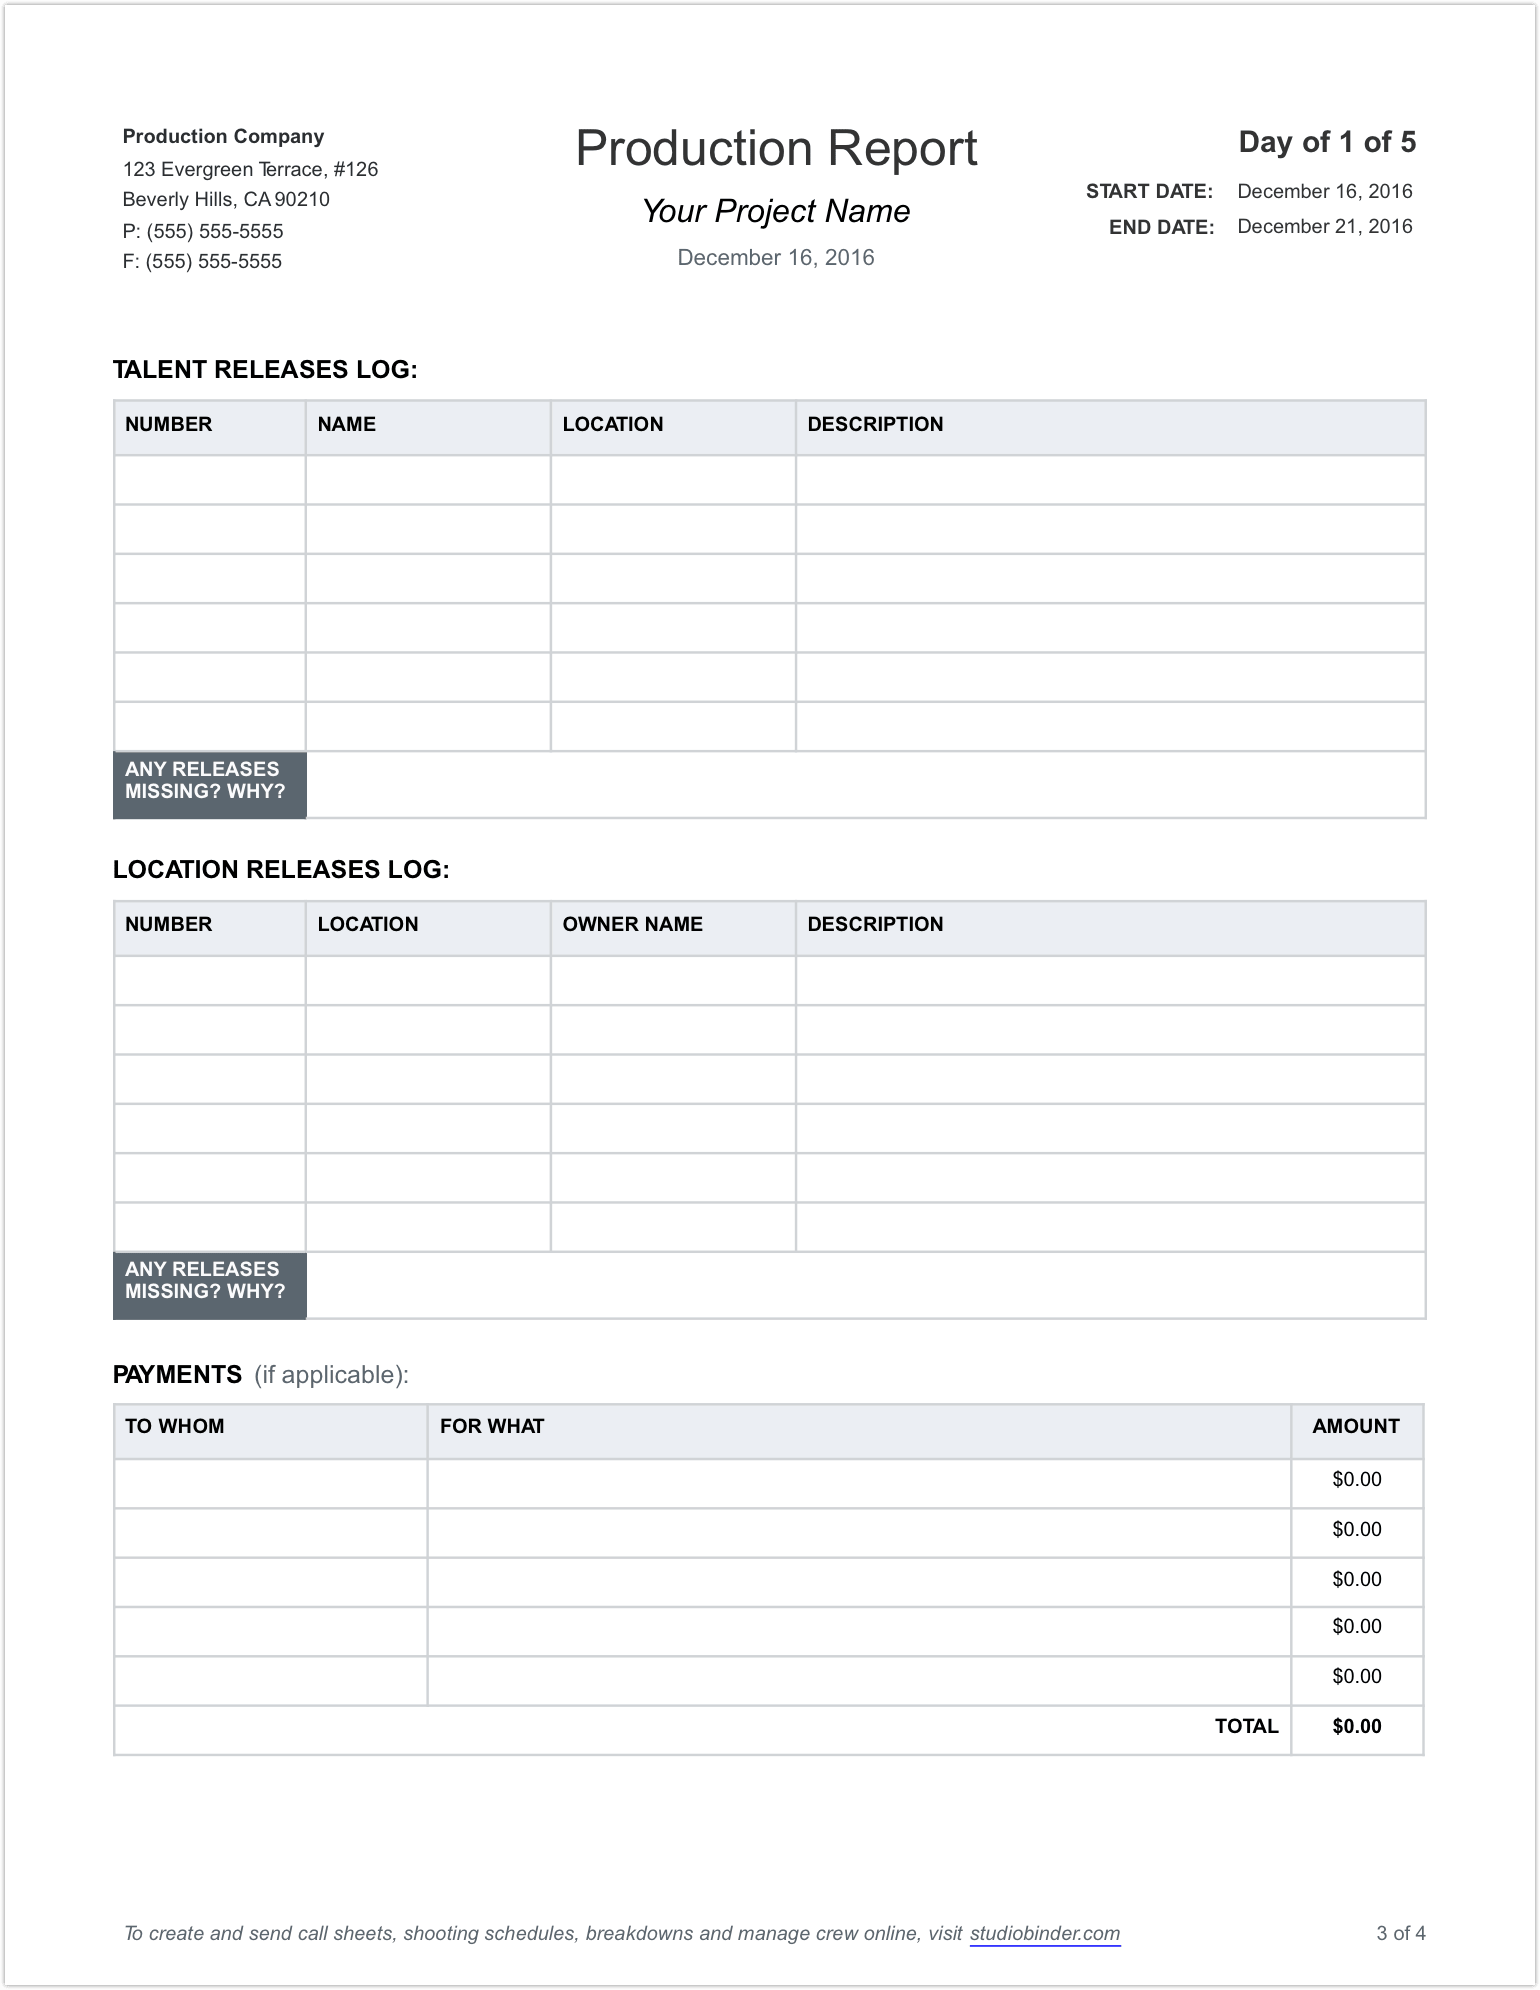 daily production report template page 3 studiobinder